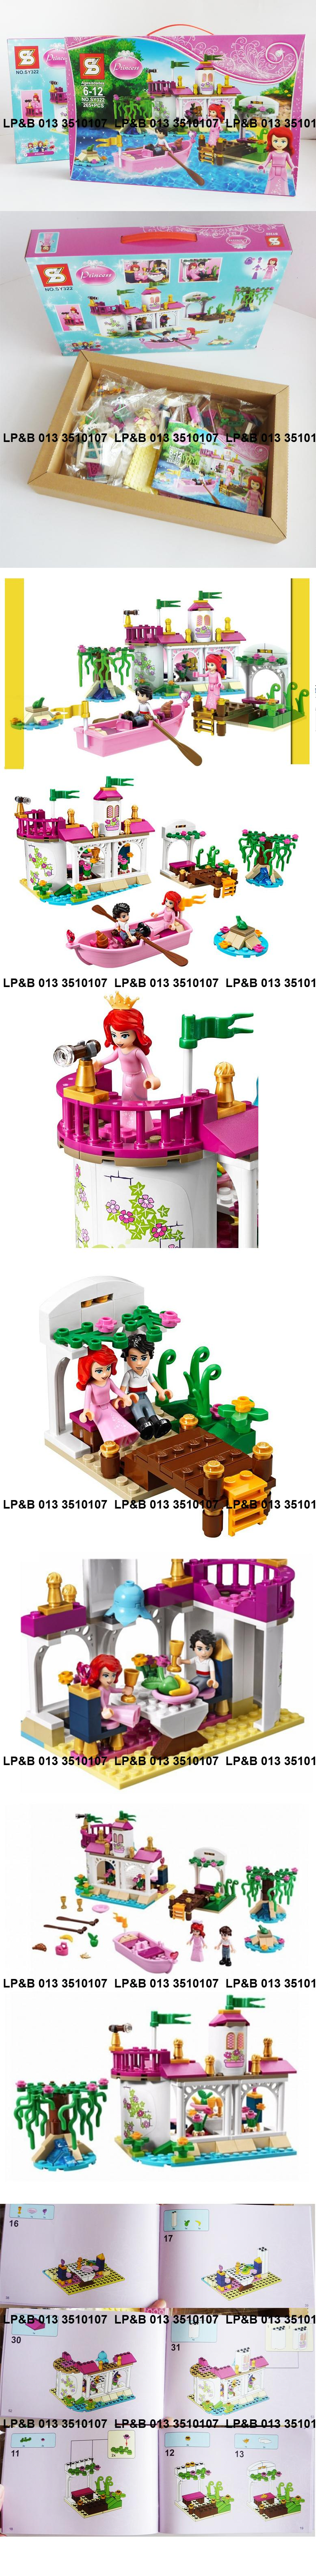 Lego Compatible SY322 Princess Castle Series Ariel's Magical Boat Ride